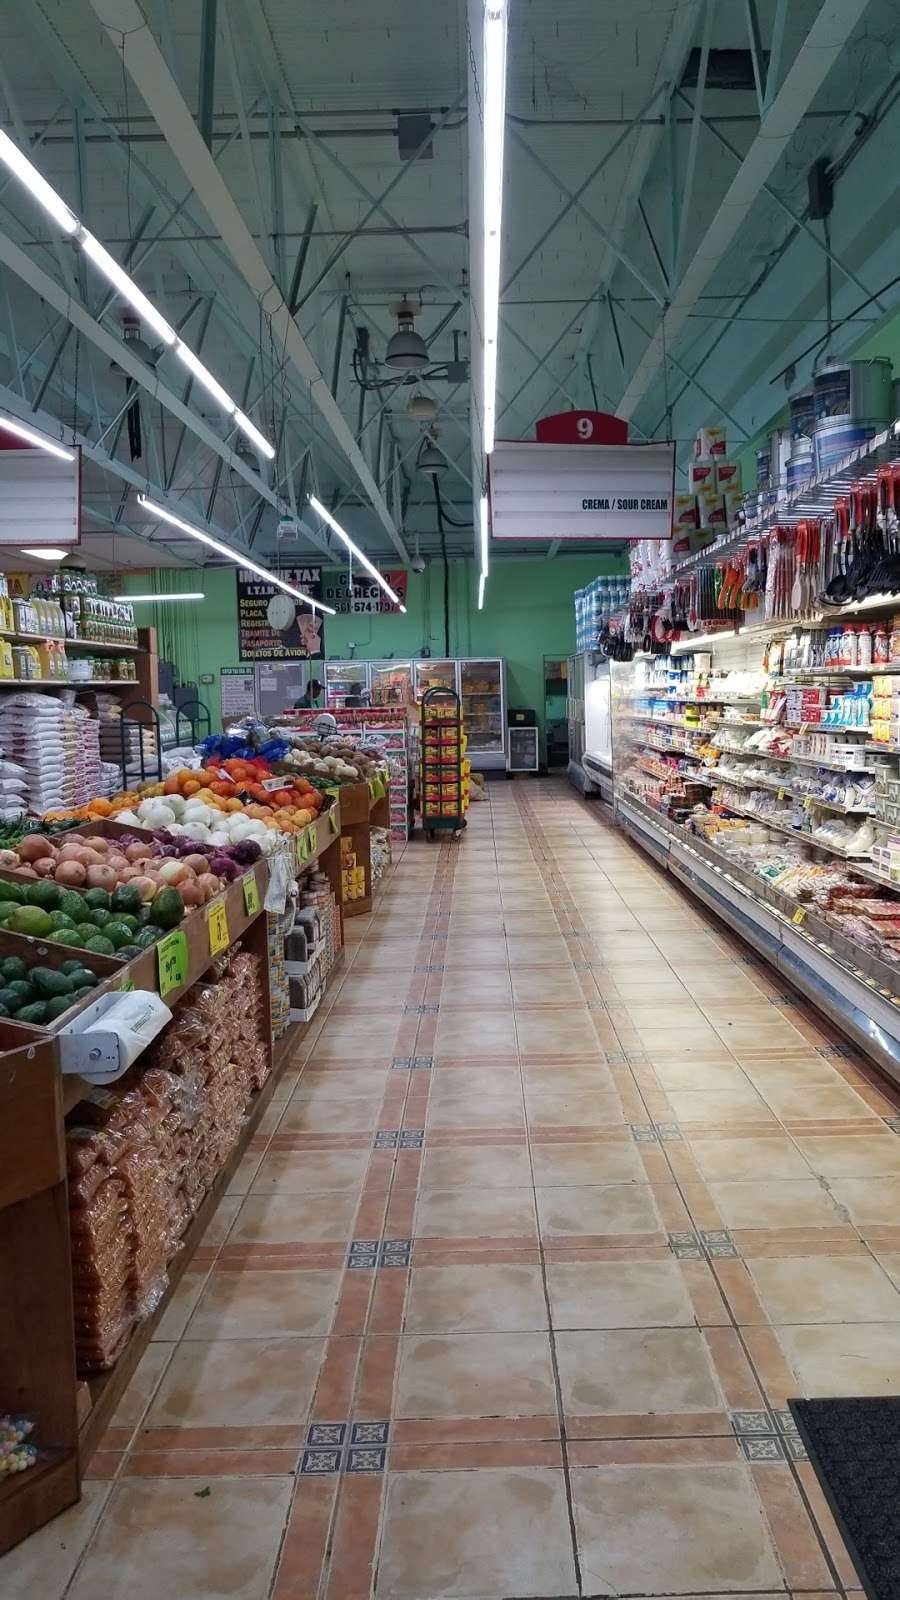 Bowling Supermarket - store  | Photo 2 of 10 | Address: 1425 S Main St, Belle Glade, FL 33430, USA | Phone: (561) 996-6349